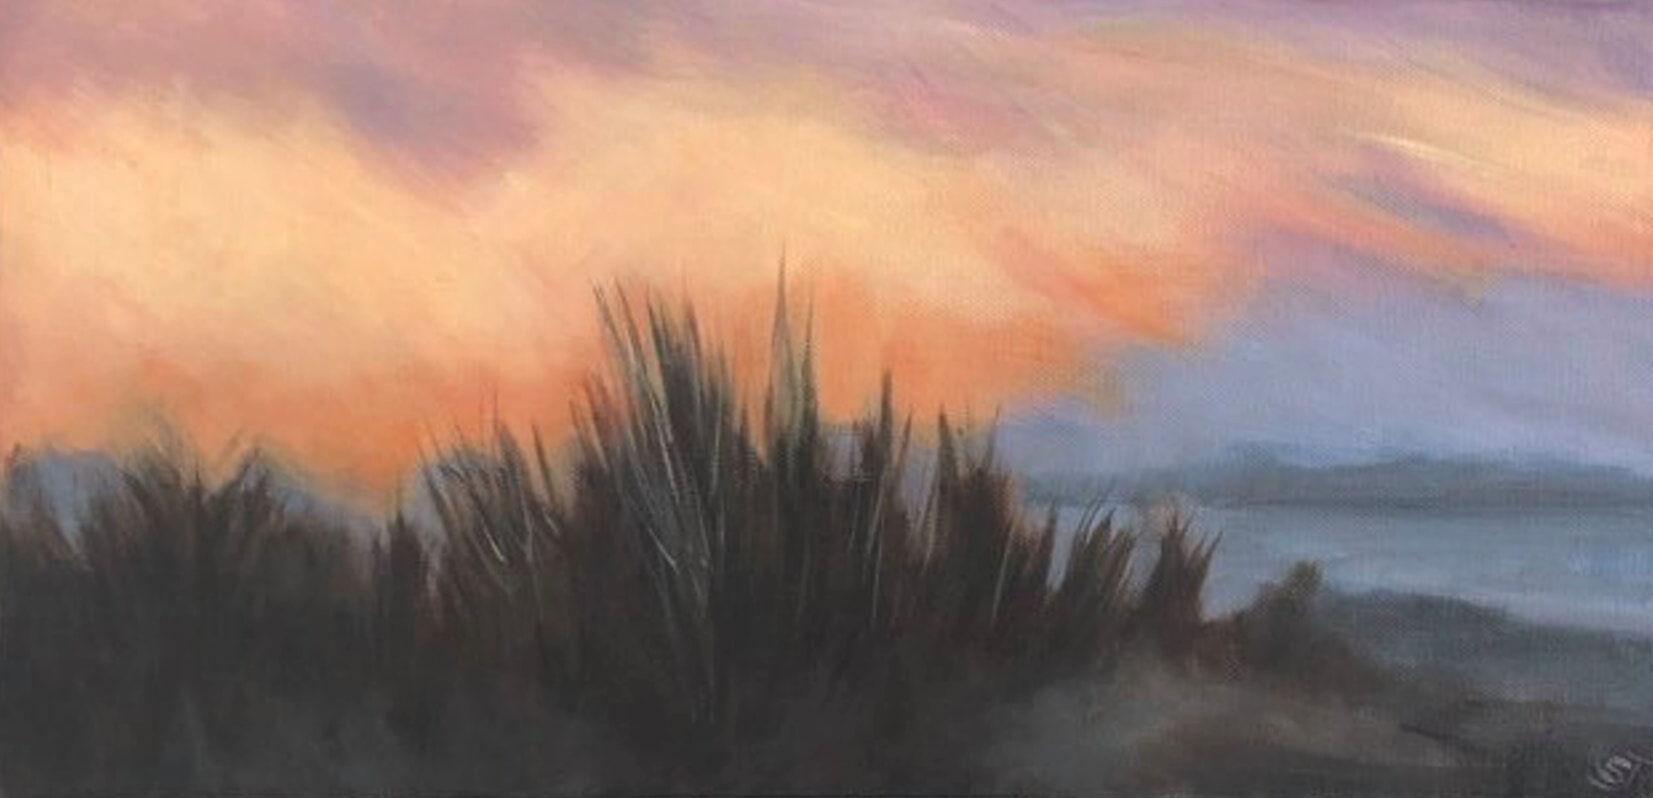 acrylic painting of a beach at sunset by artist Shona Jones